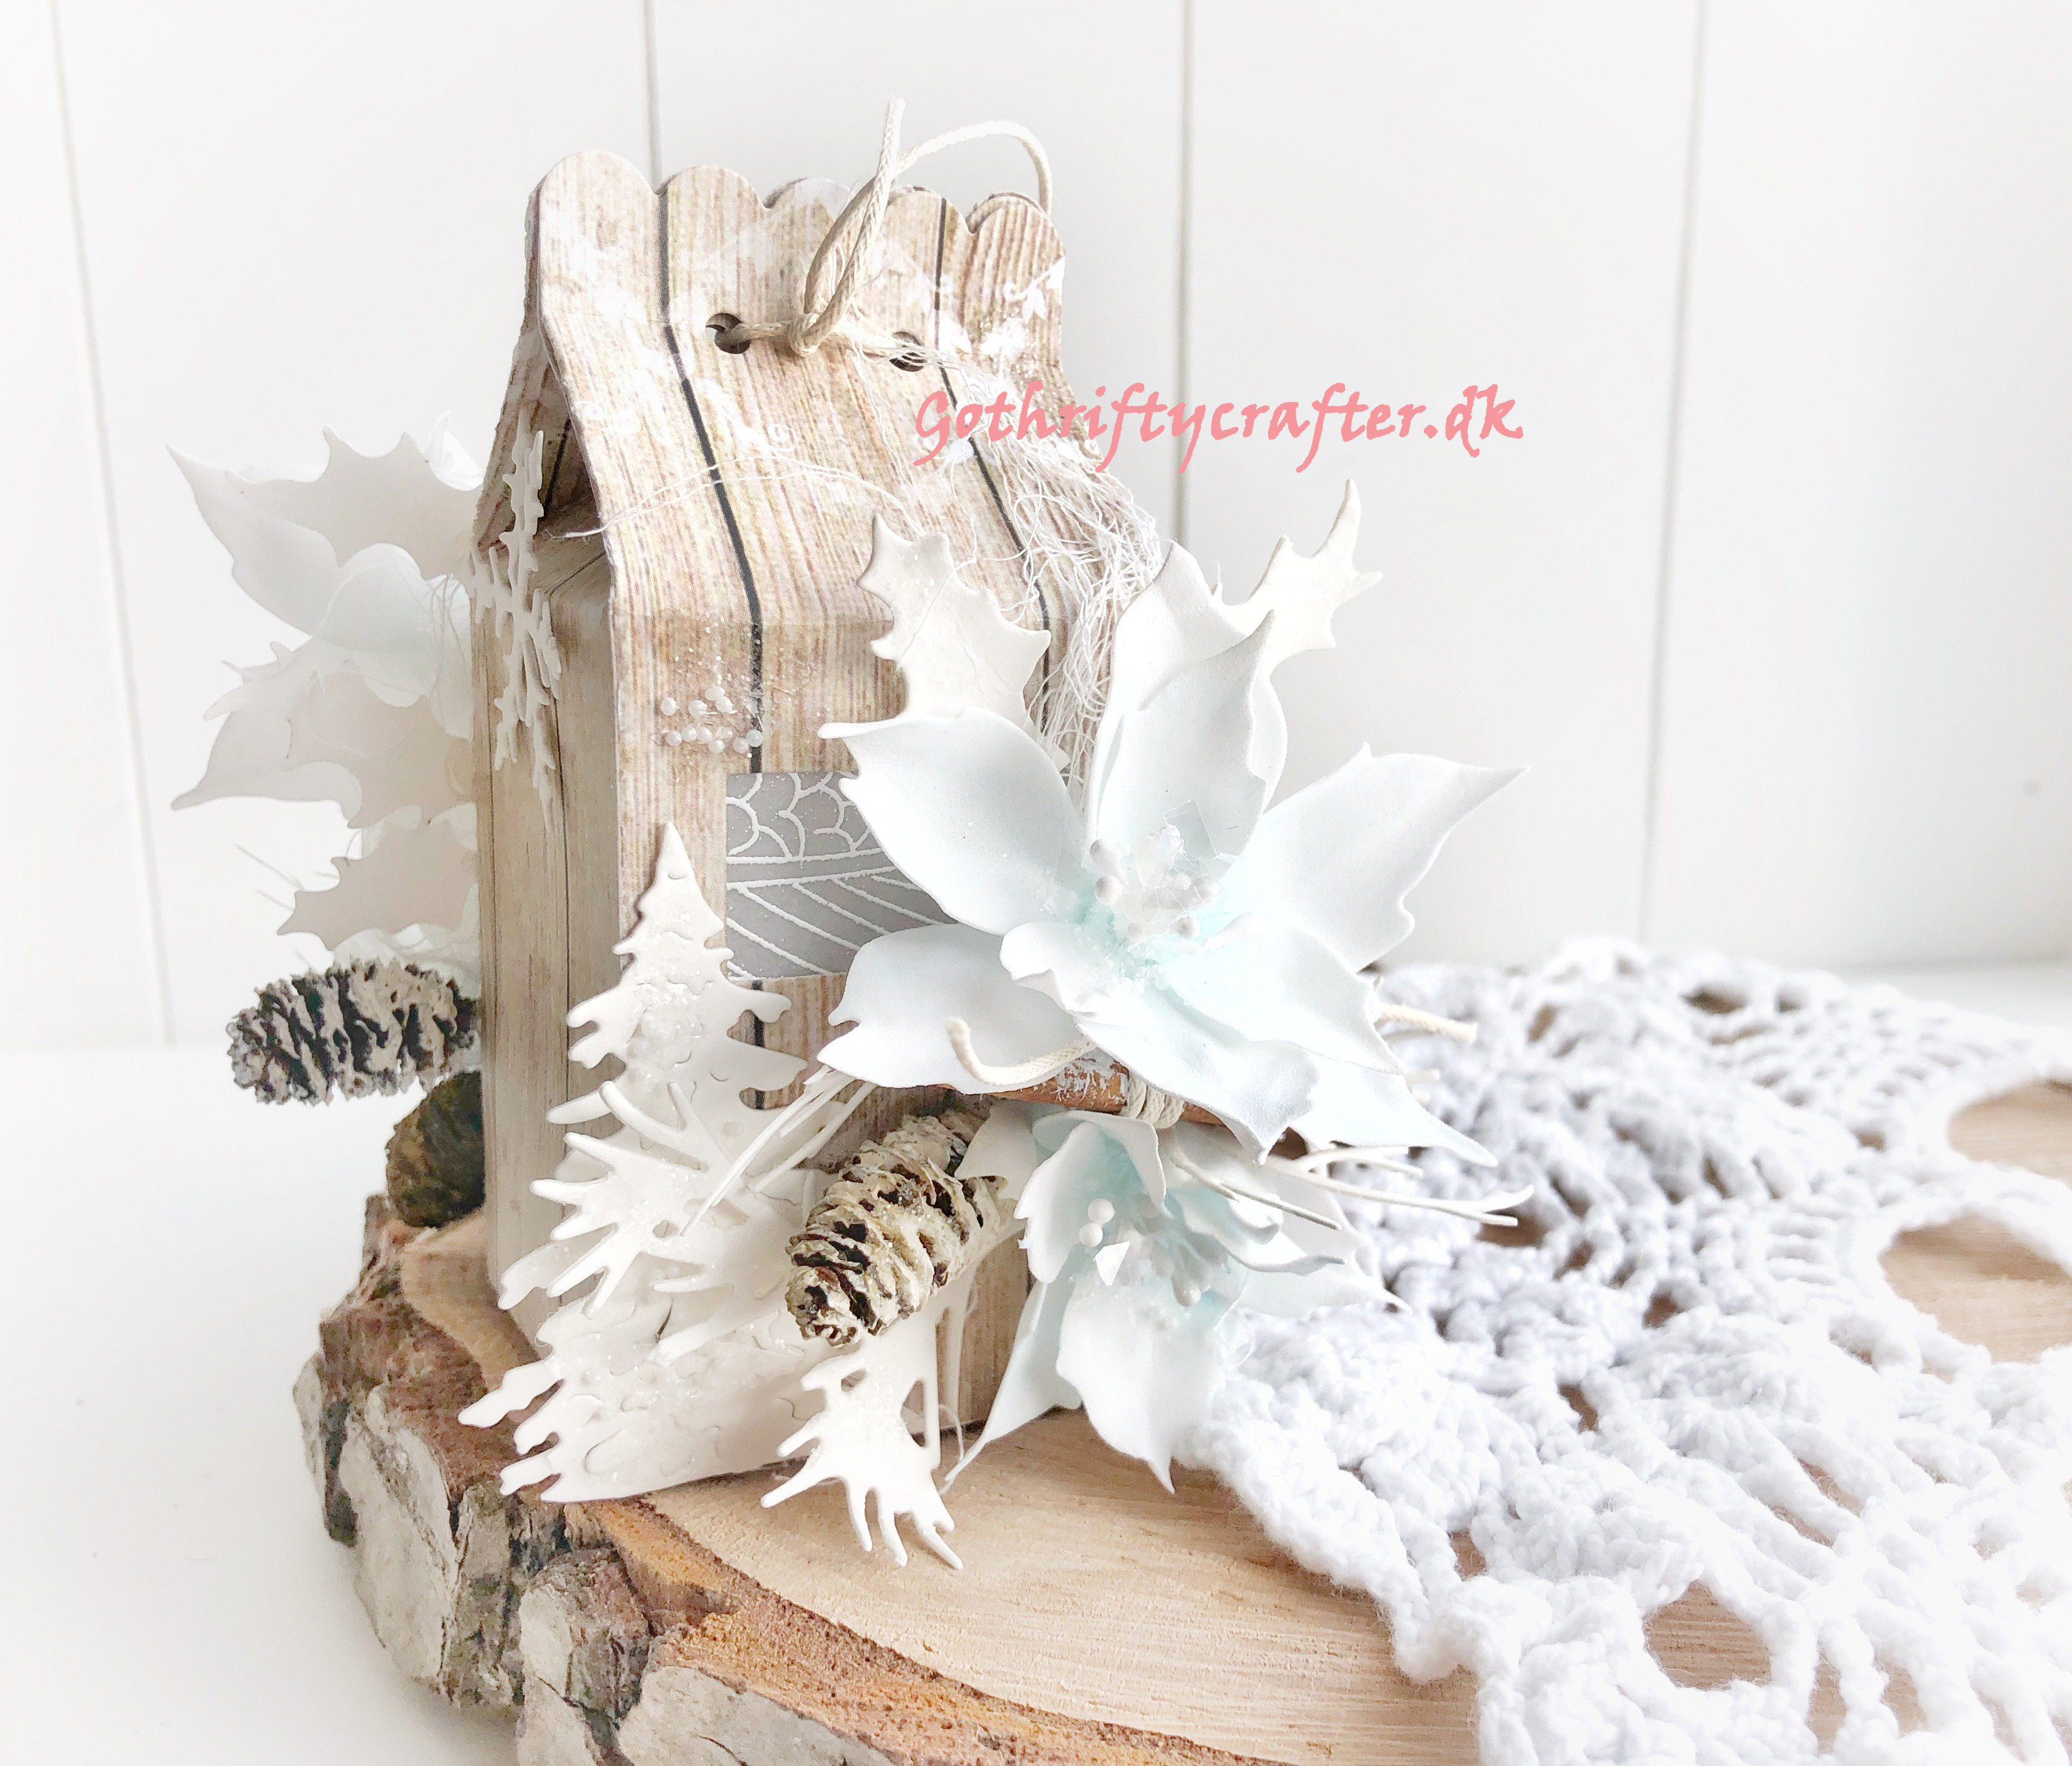 Gothriftycrafter Fabrika Decoru winter white snow foamiran flowers cinamon crystal wood house Christmas New year treeJPG